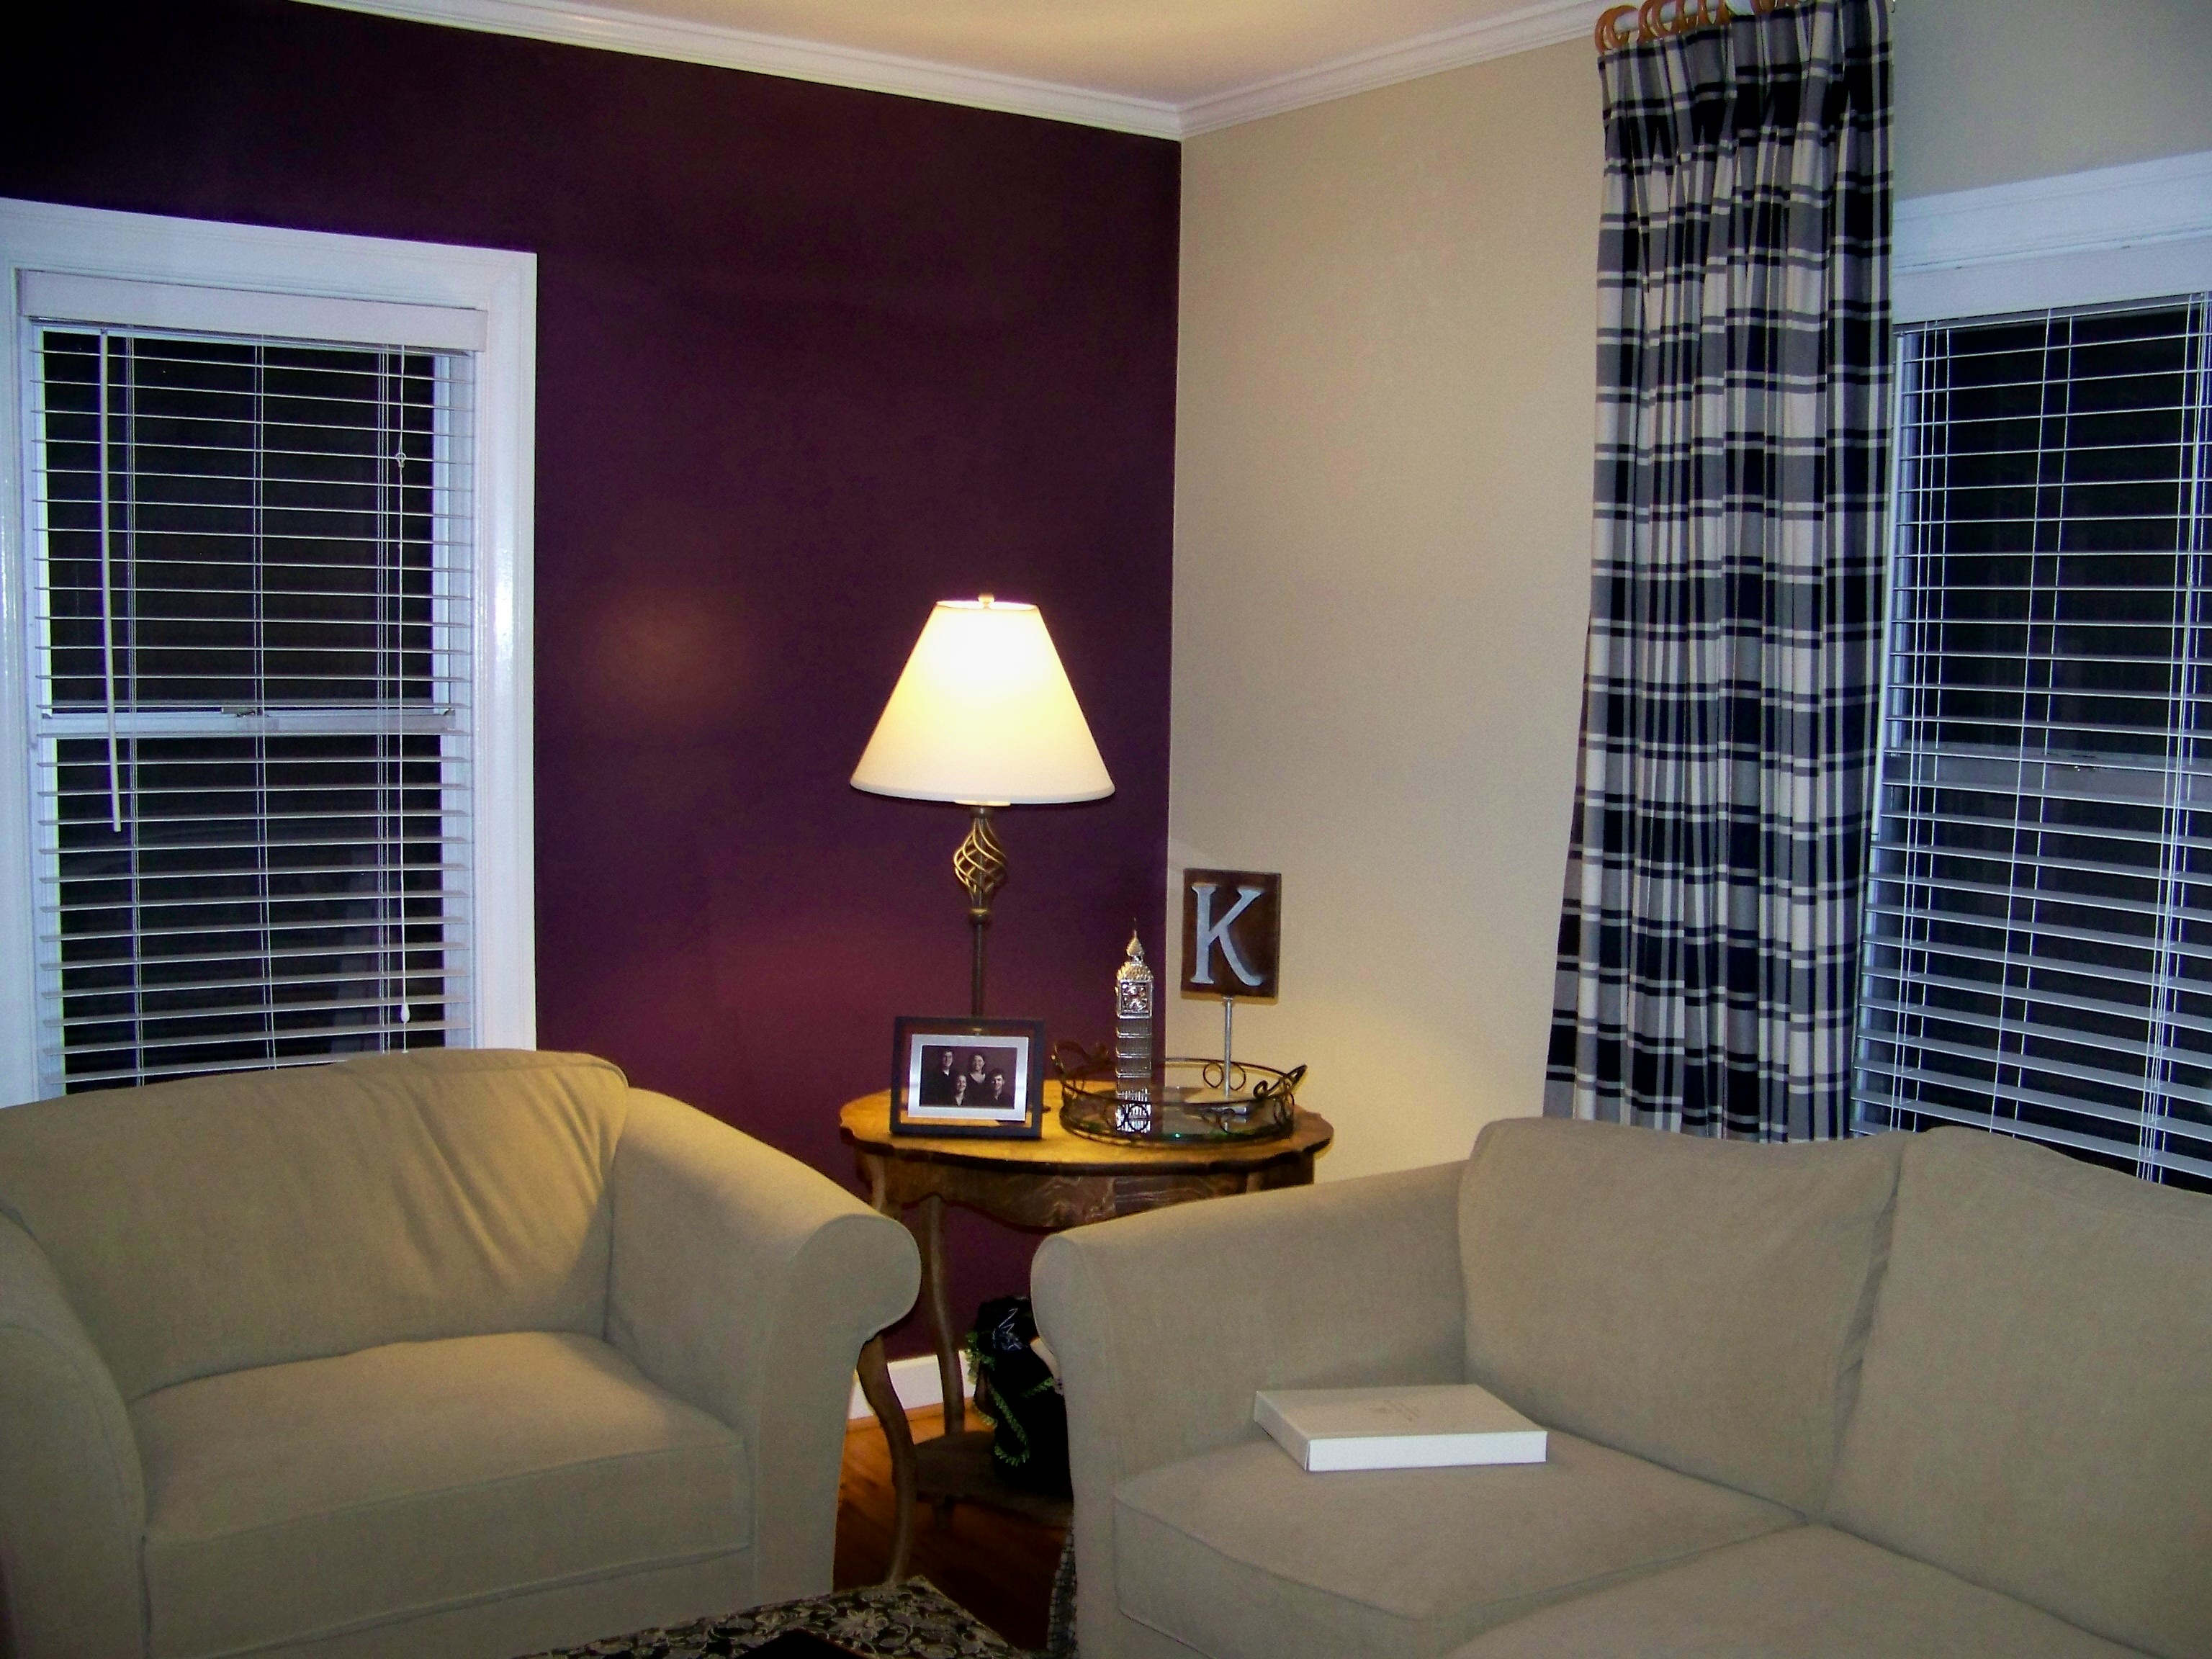 plum colored living rooms affordable room sets for sale anyone with plum/dark berry/claret walls?